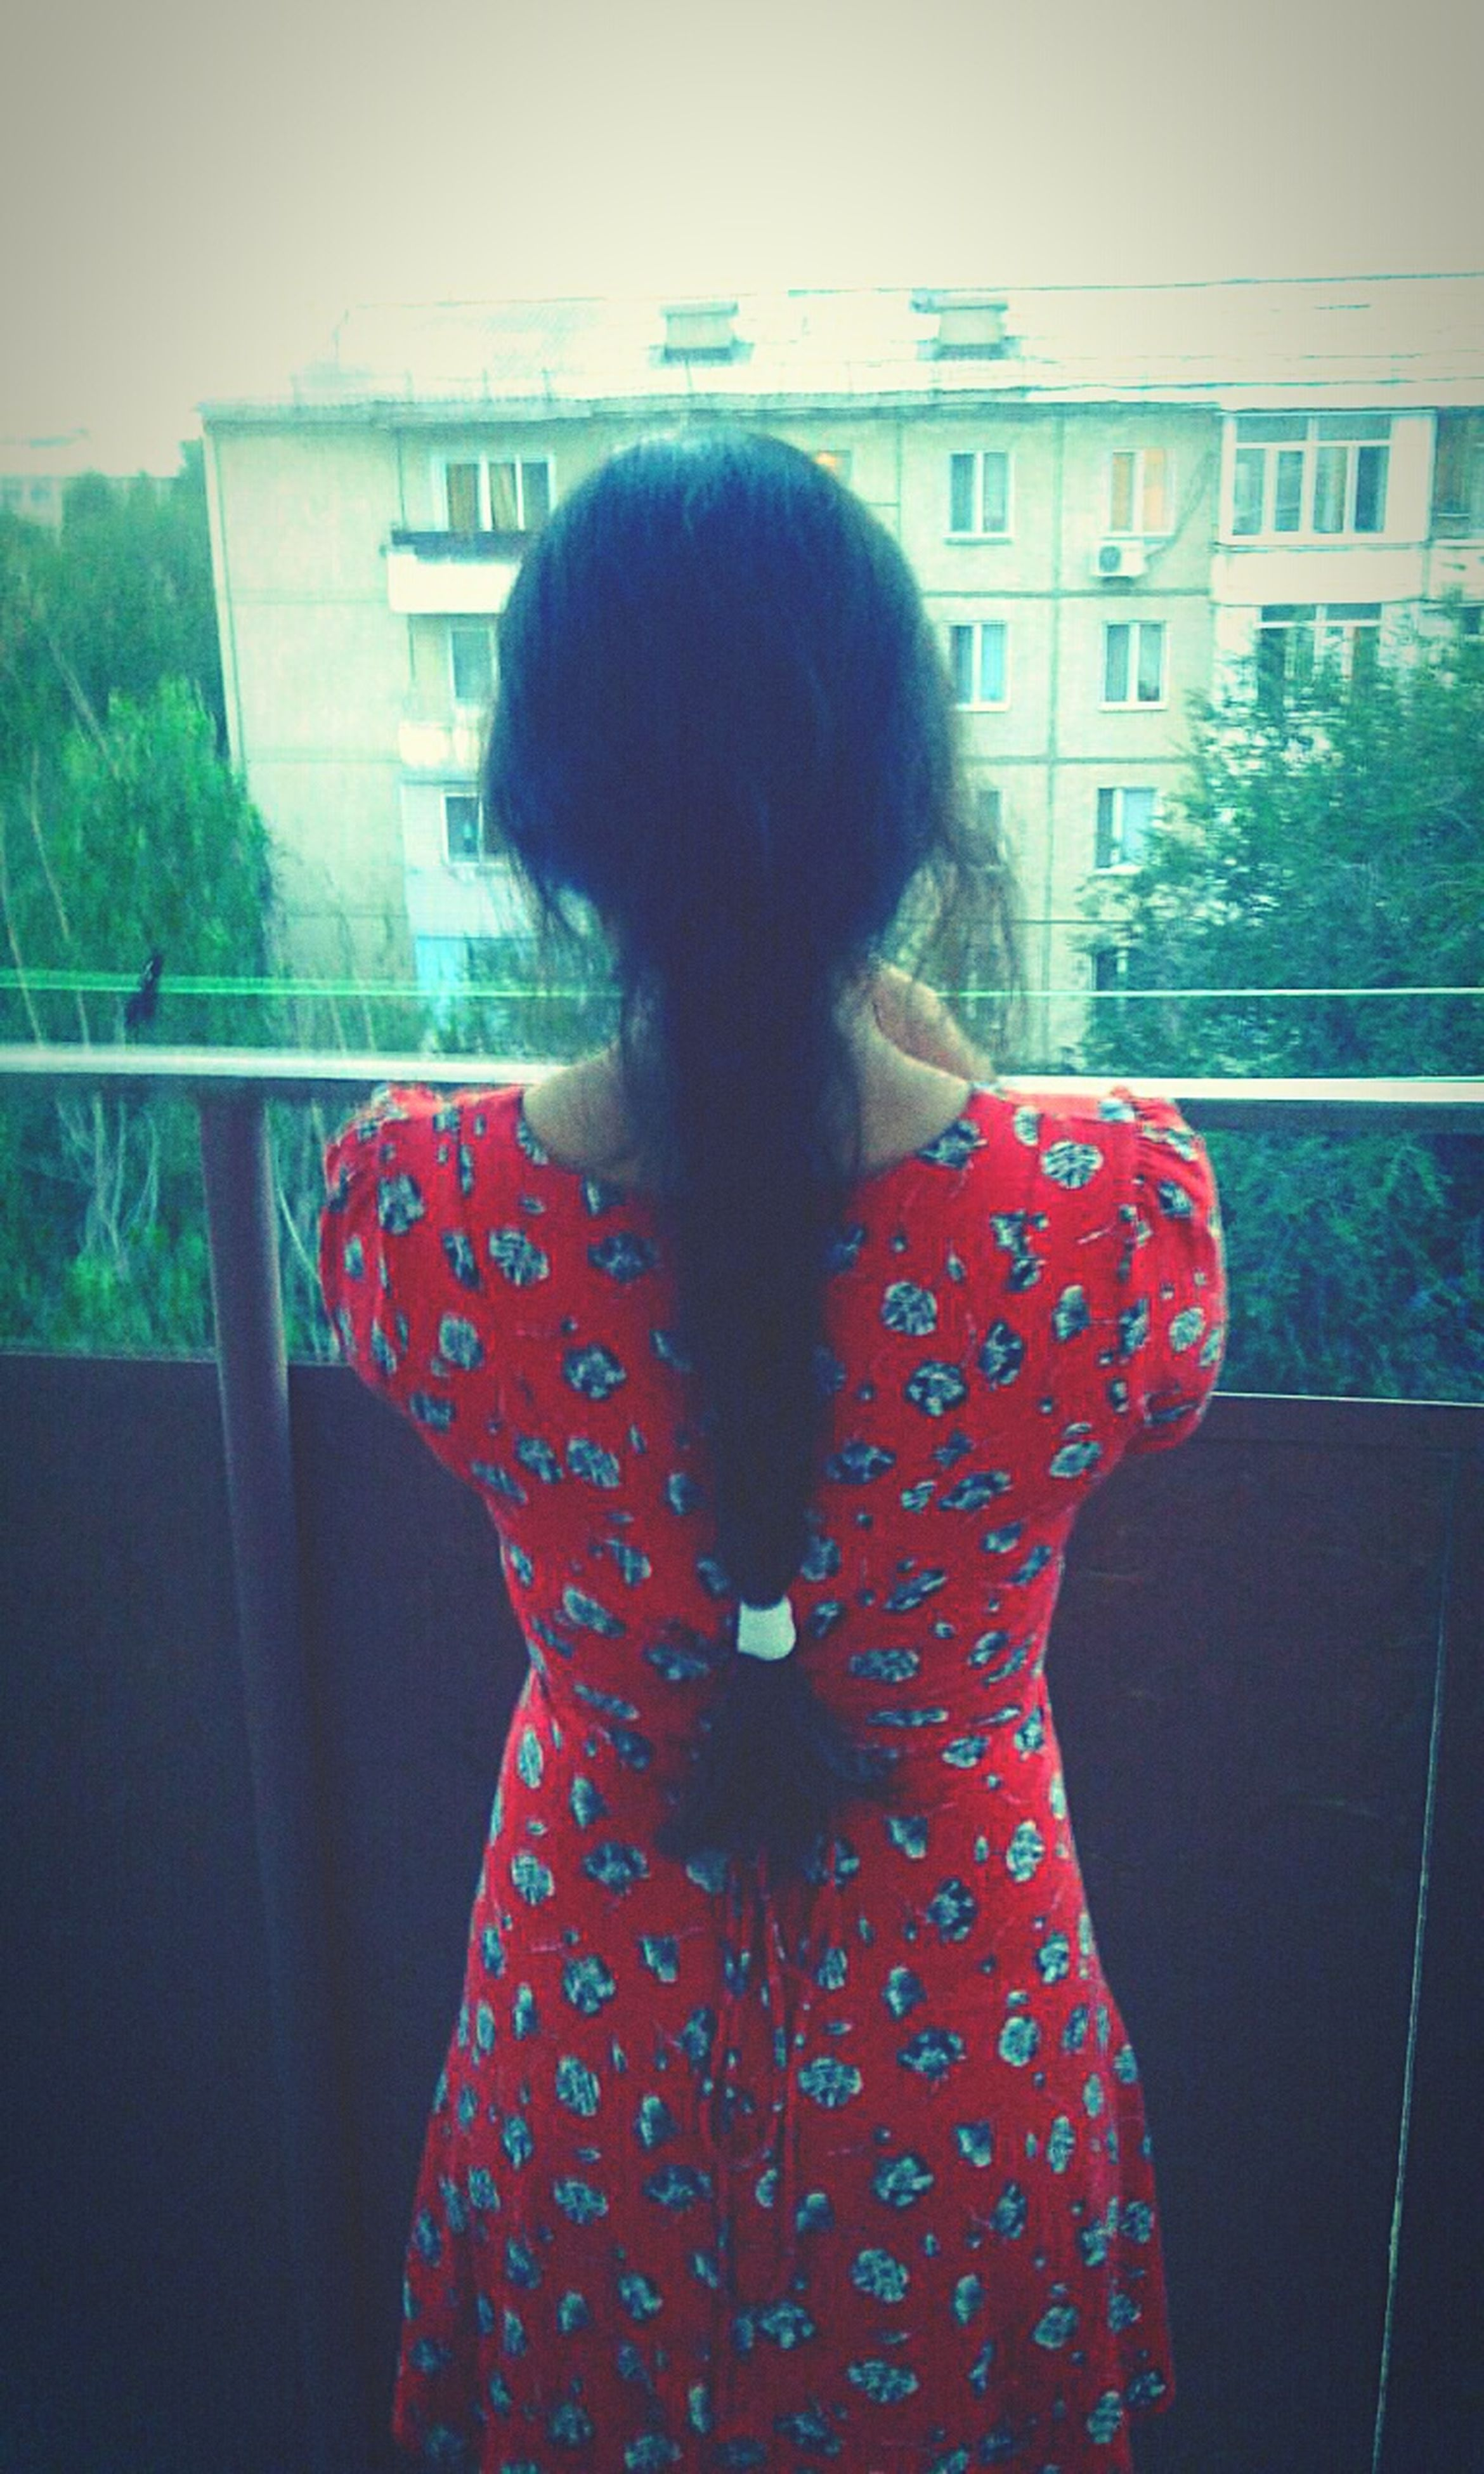 rear view, person, waist up, balcony, long hair, casual clothing, young adult, red, domestic life, human hair